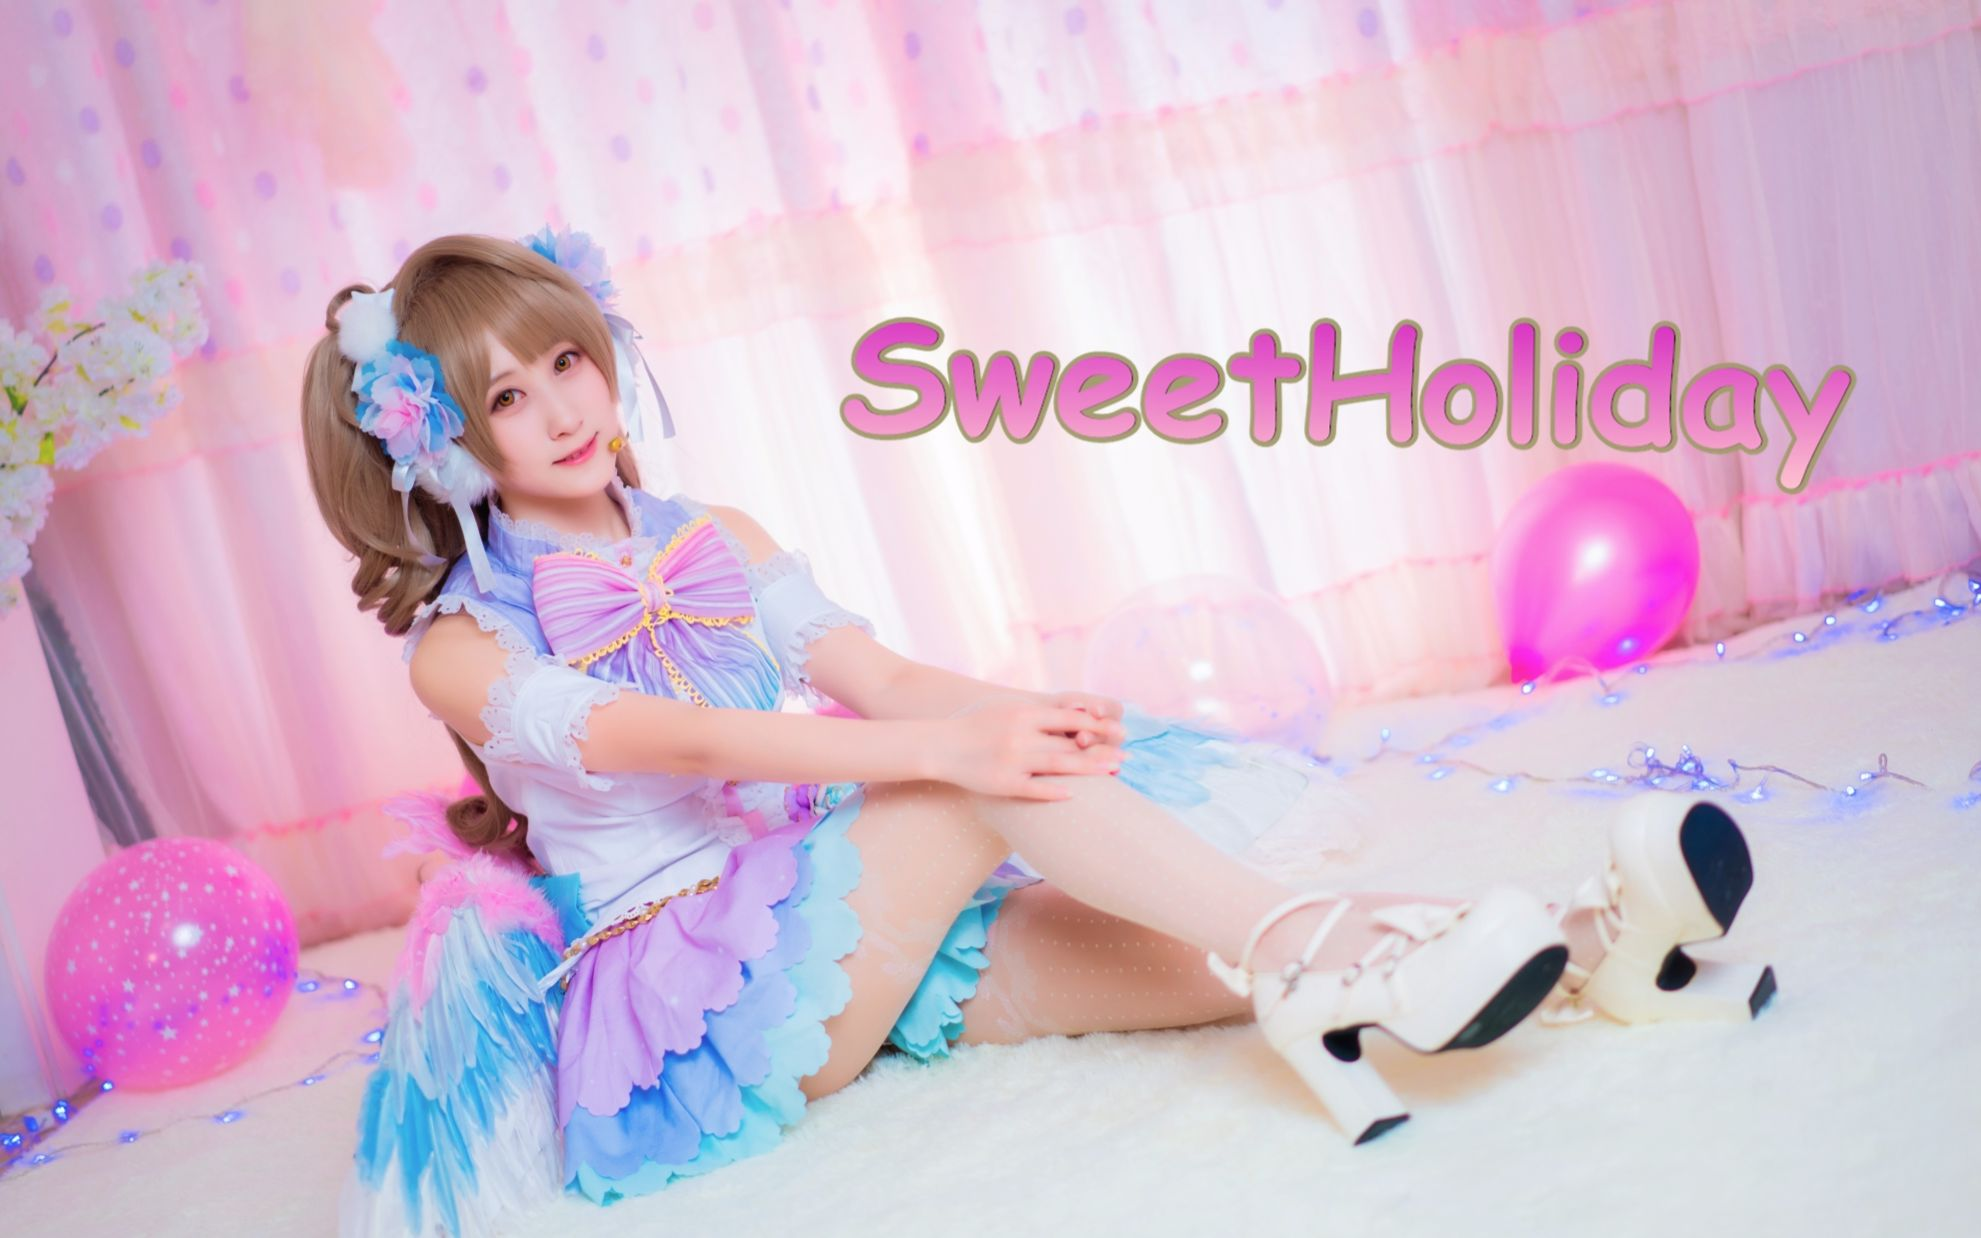 【@小萌】南小鸟COS❤sweet&sweet holiday【LoveLive!】